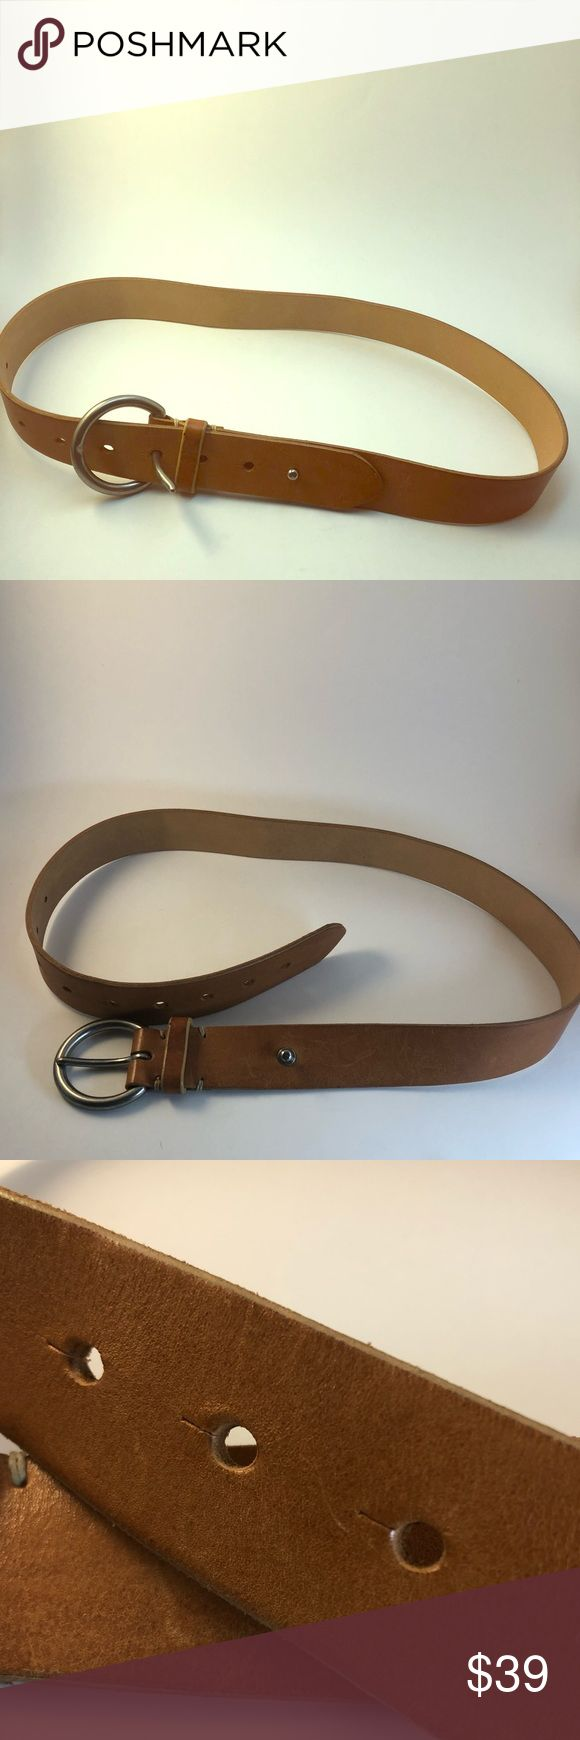 Gap minimalist tan leather belt Super simple belt, yet fashionable. Can wear with pretty much anything. Normal wear and tear nothing that a little leather cleaner can't take care of. GAP Accessories Belts